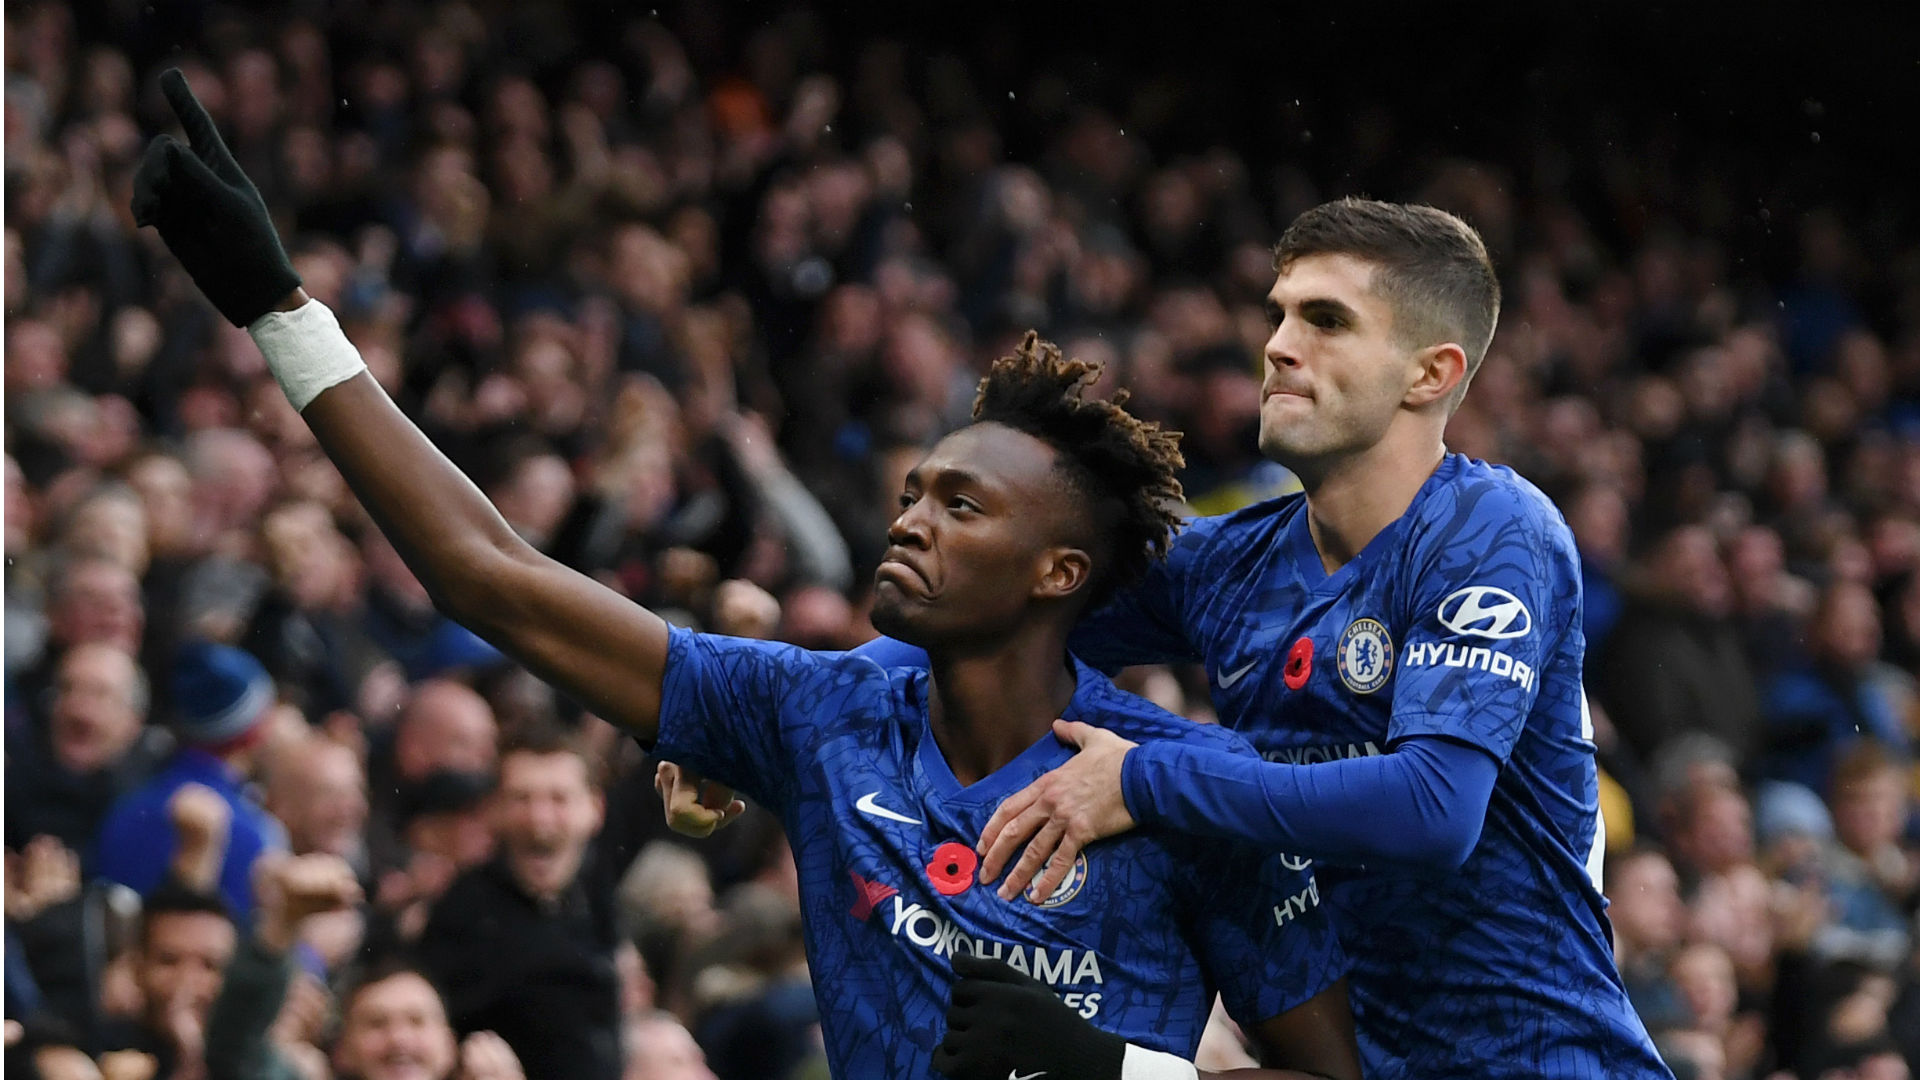 Harry Kane is the perfect example for Tammy Abraham to follow, according to Frank Lampard, whose Chelsea beat Crystal Palace 2-0.